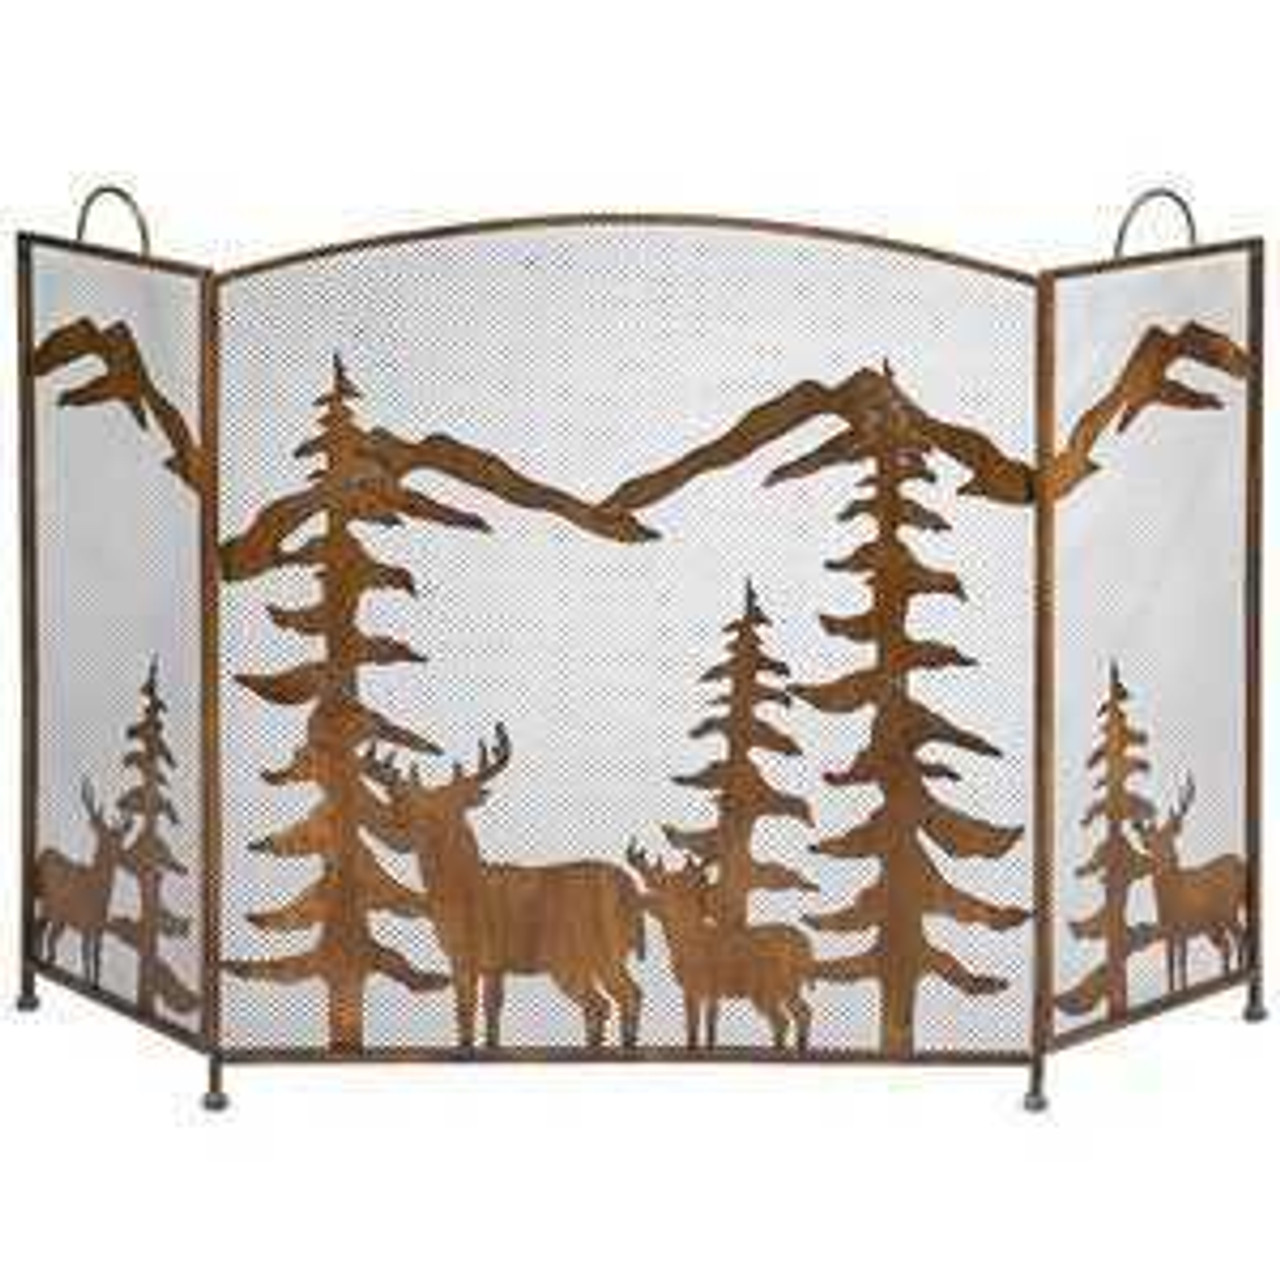 Wildlife Fireplace Screens & Accessories